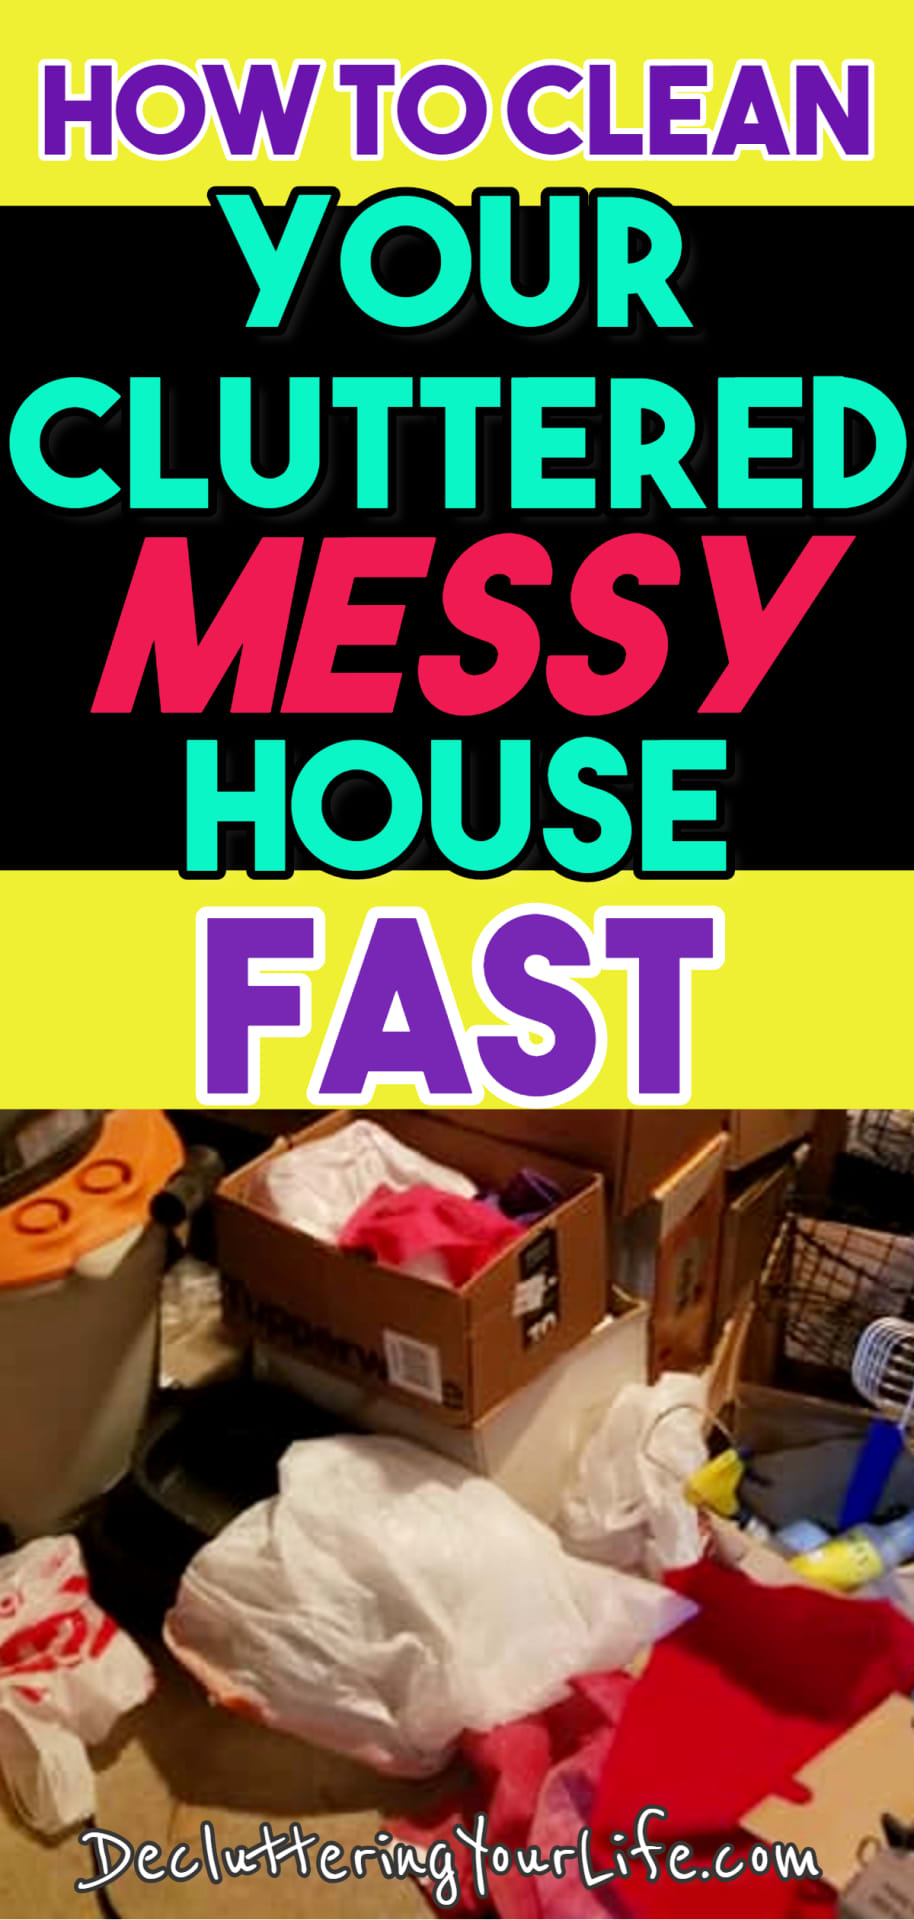 Uncluttering Your Home! How to clean a cluttered house FAST - go from cluttered mess to organized success with these cleaning hacks to declutter messy house - even if you want to organize your home on a budget.  Dejunking your home is easy with these dejunking tips, storage solutions and clutter organization hacks.  Fast and simple clutter control ideas made easy - free home organization printables and checklists too!